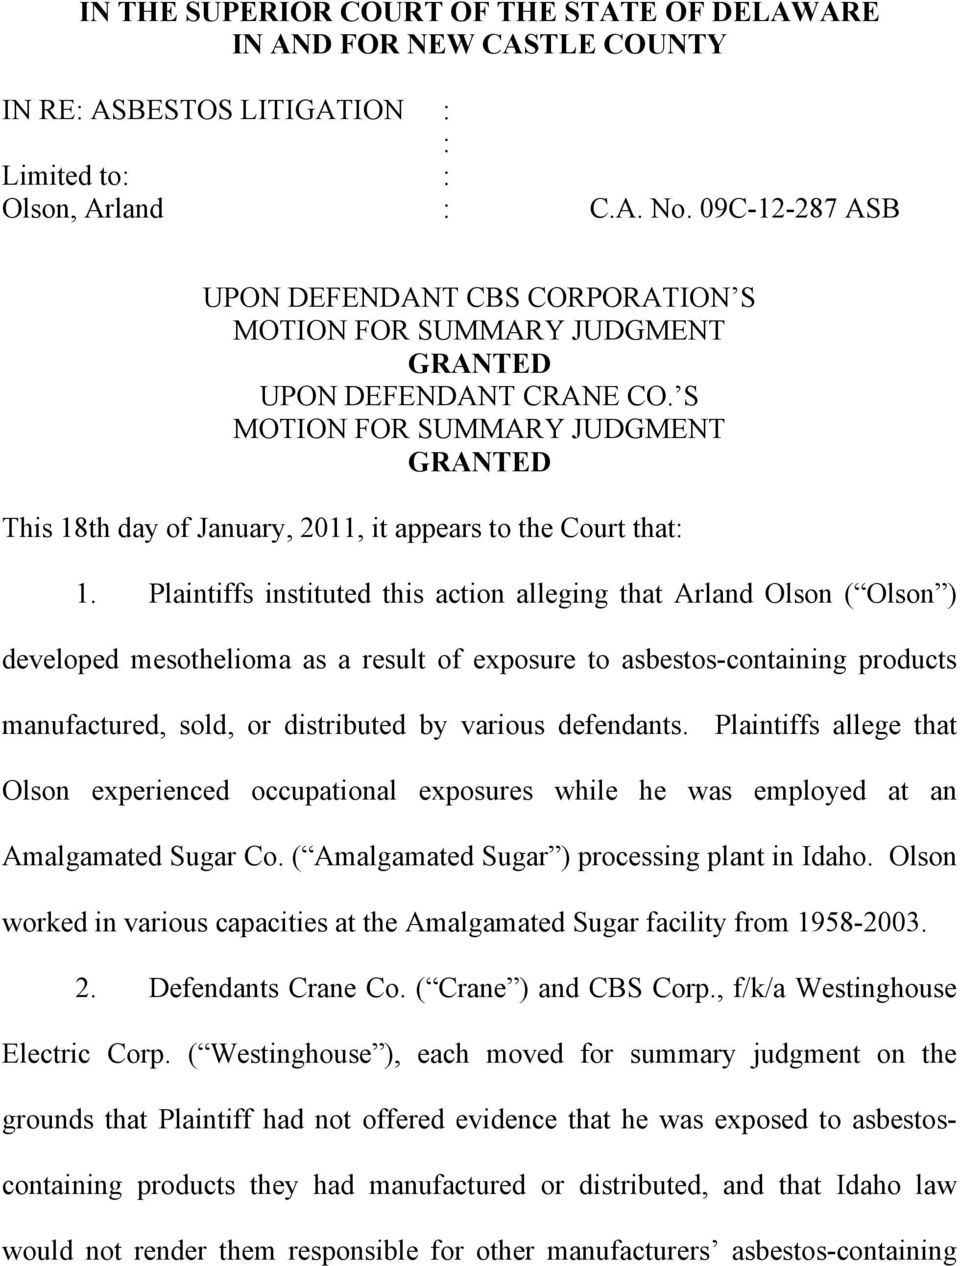 S MOTION FOR SUMMARY JUDGMENT GRANTED This 18th day of January, 2011, it appears to the Court that: 1.